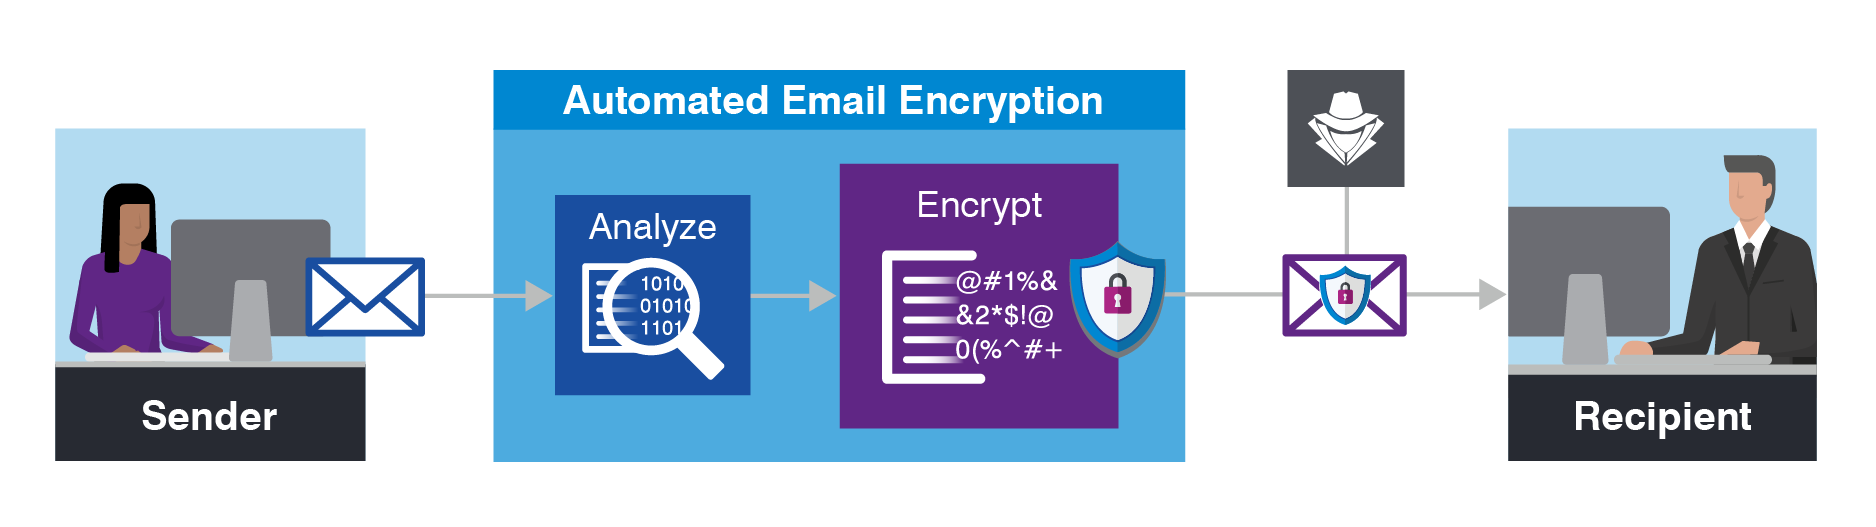 Email Security Best Practices - Auto Email Encryption